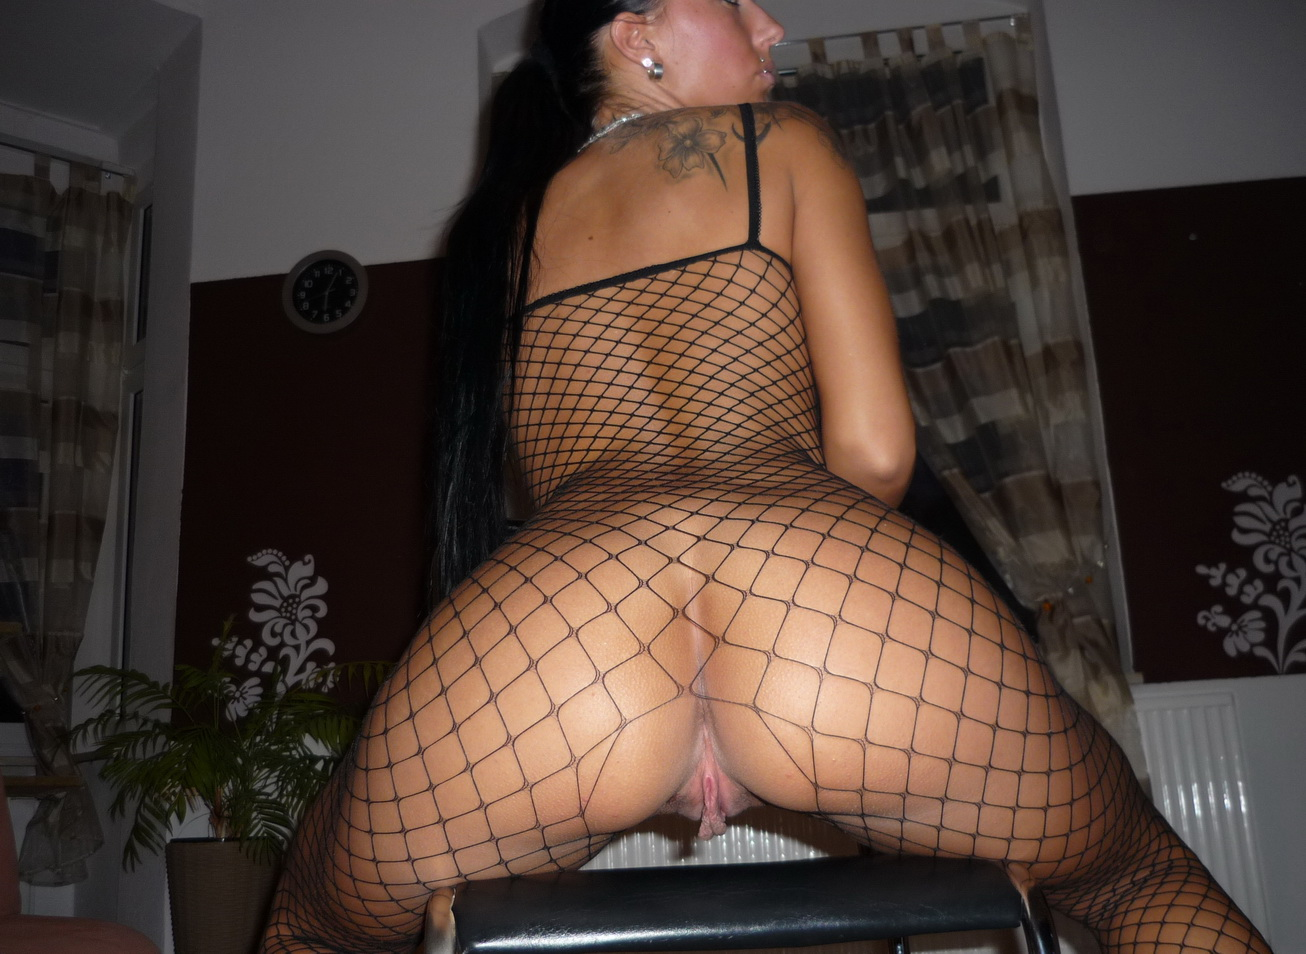 woman moaning and groaning nude